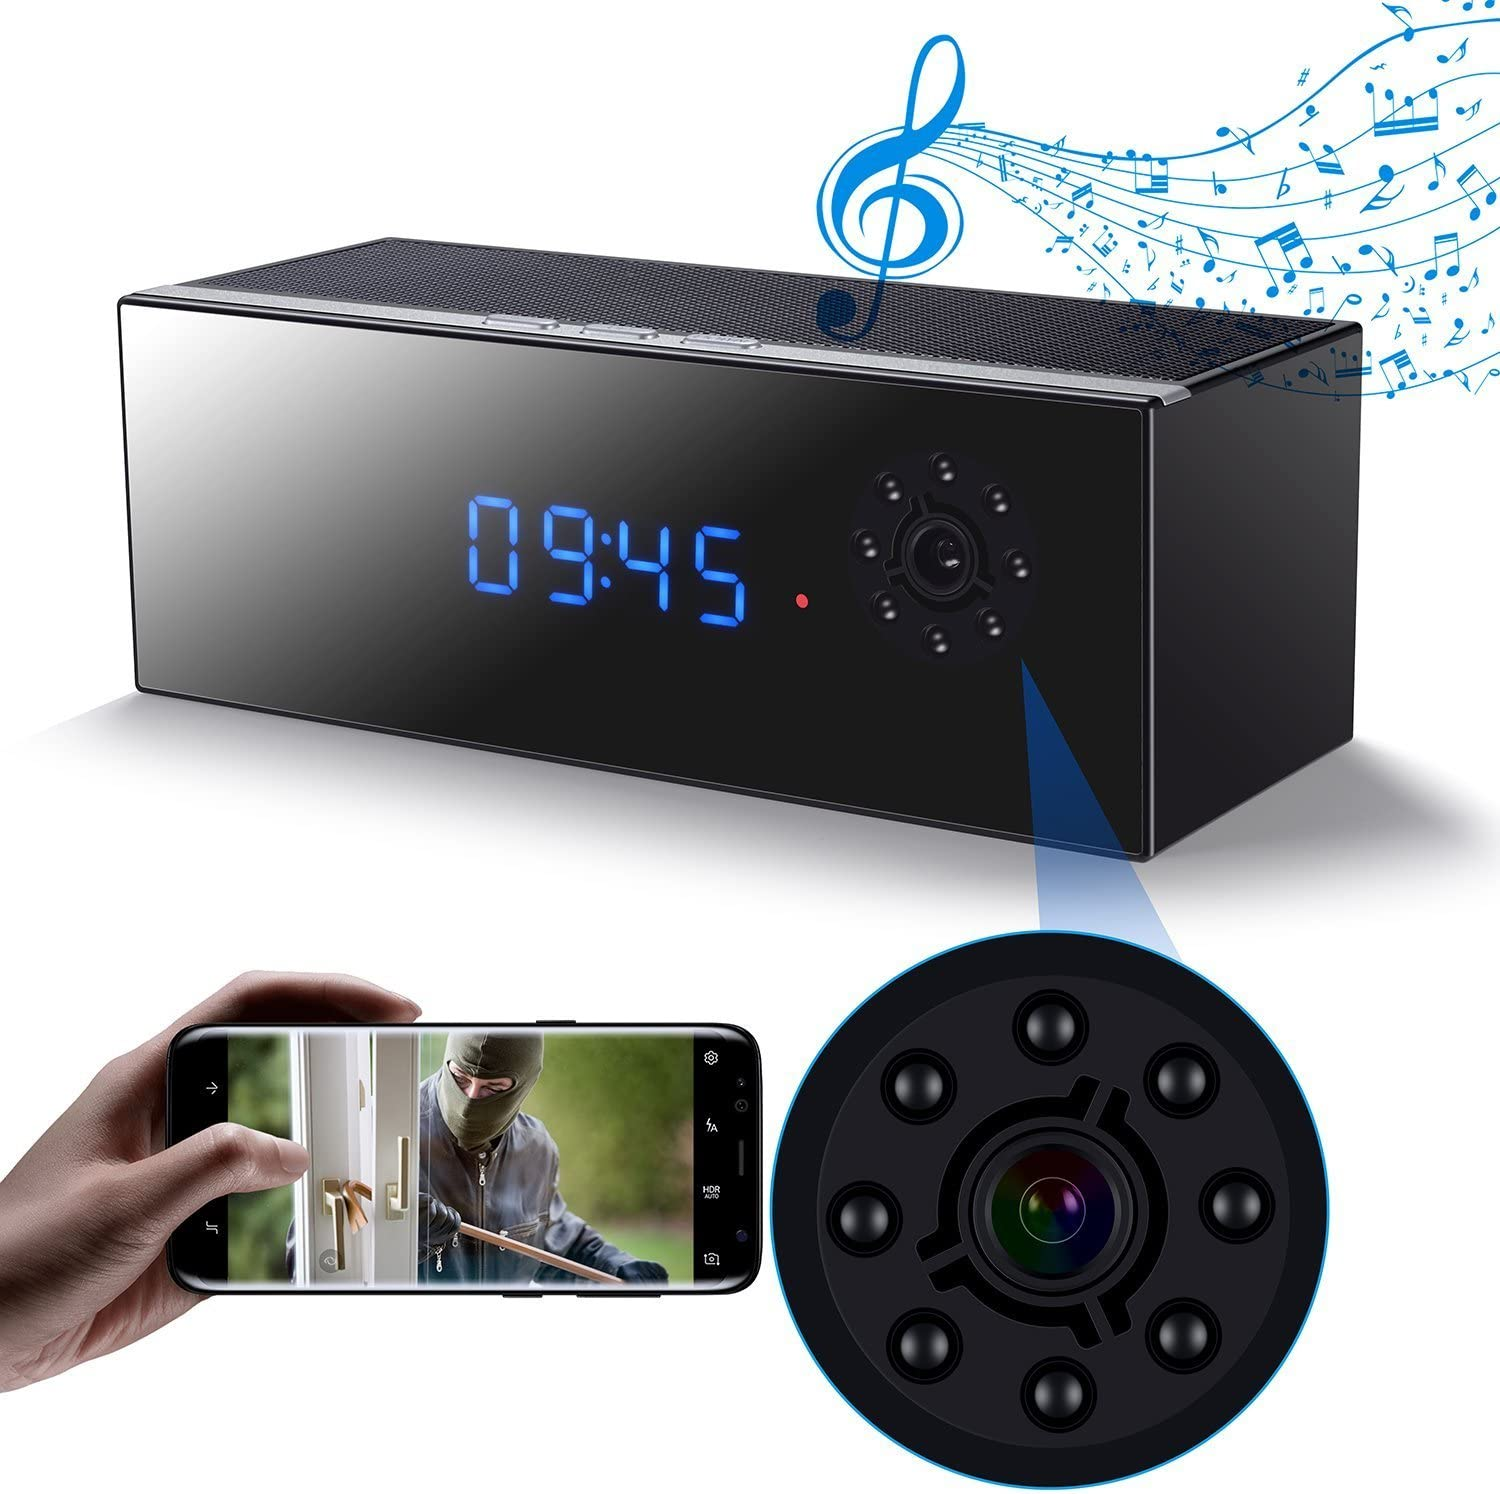 Spy Fixed price for sale Hidden Camera Clock in Night Speaker with Vision Bluetooth Memphis Mall